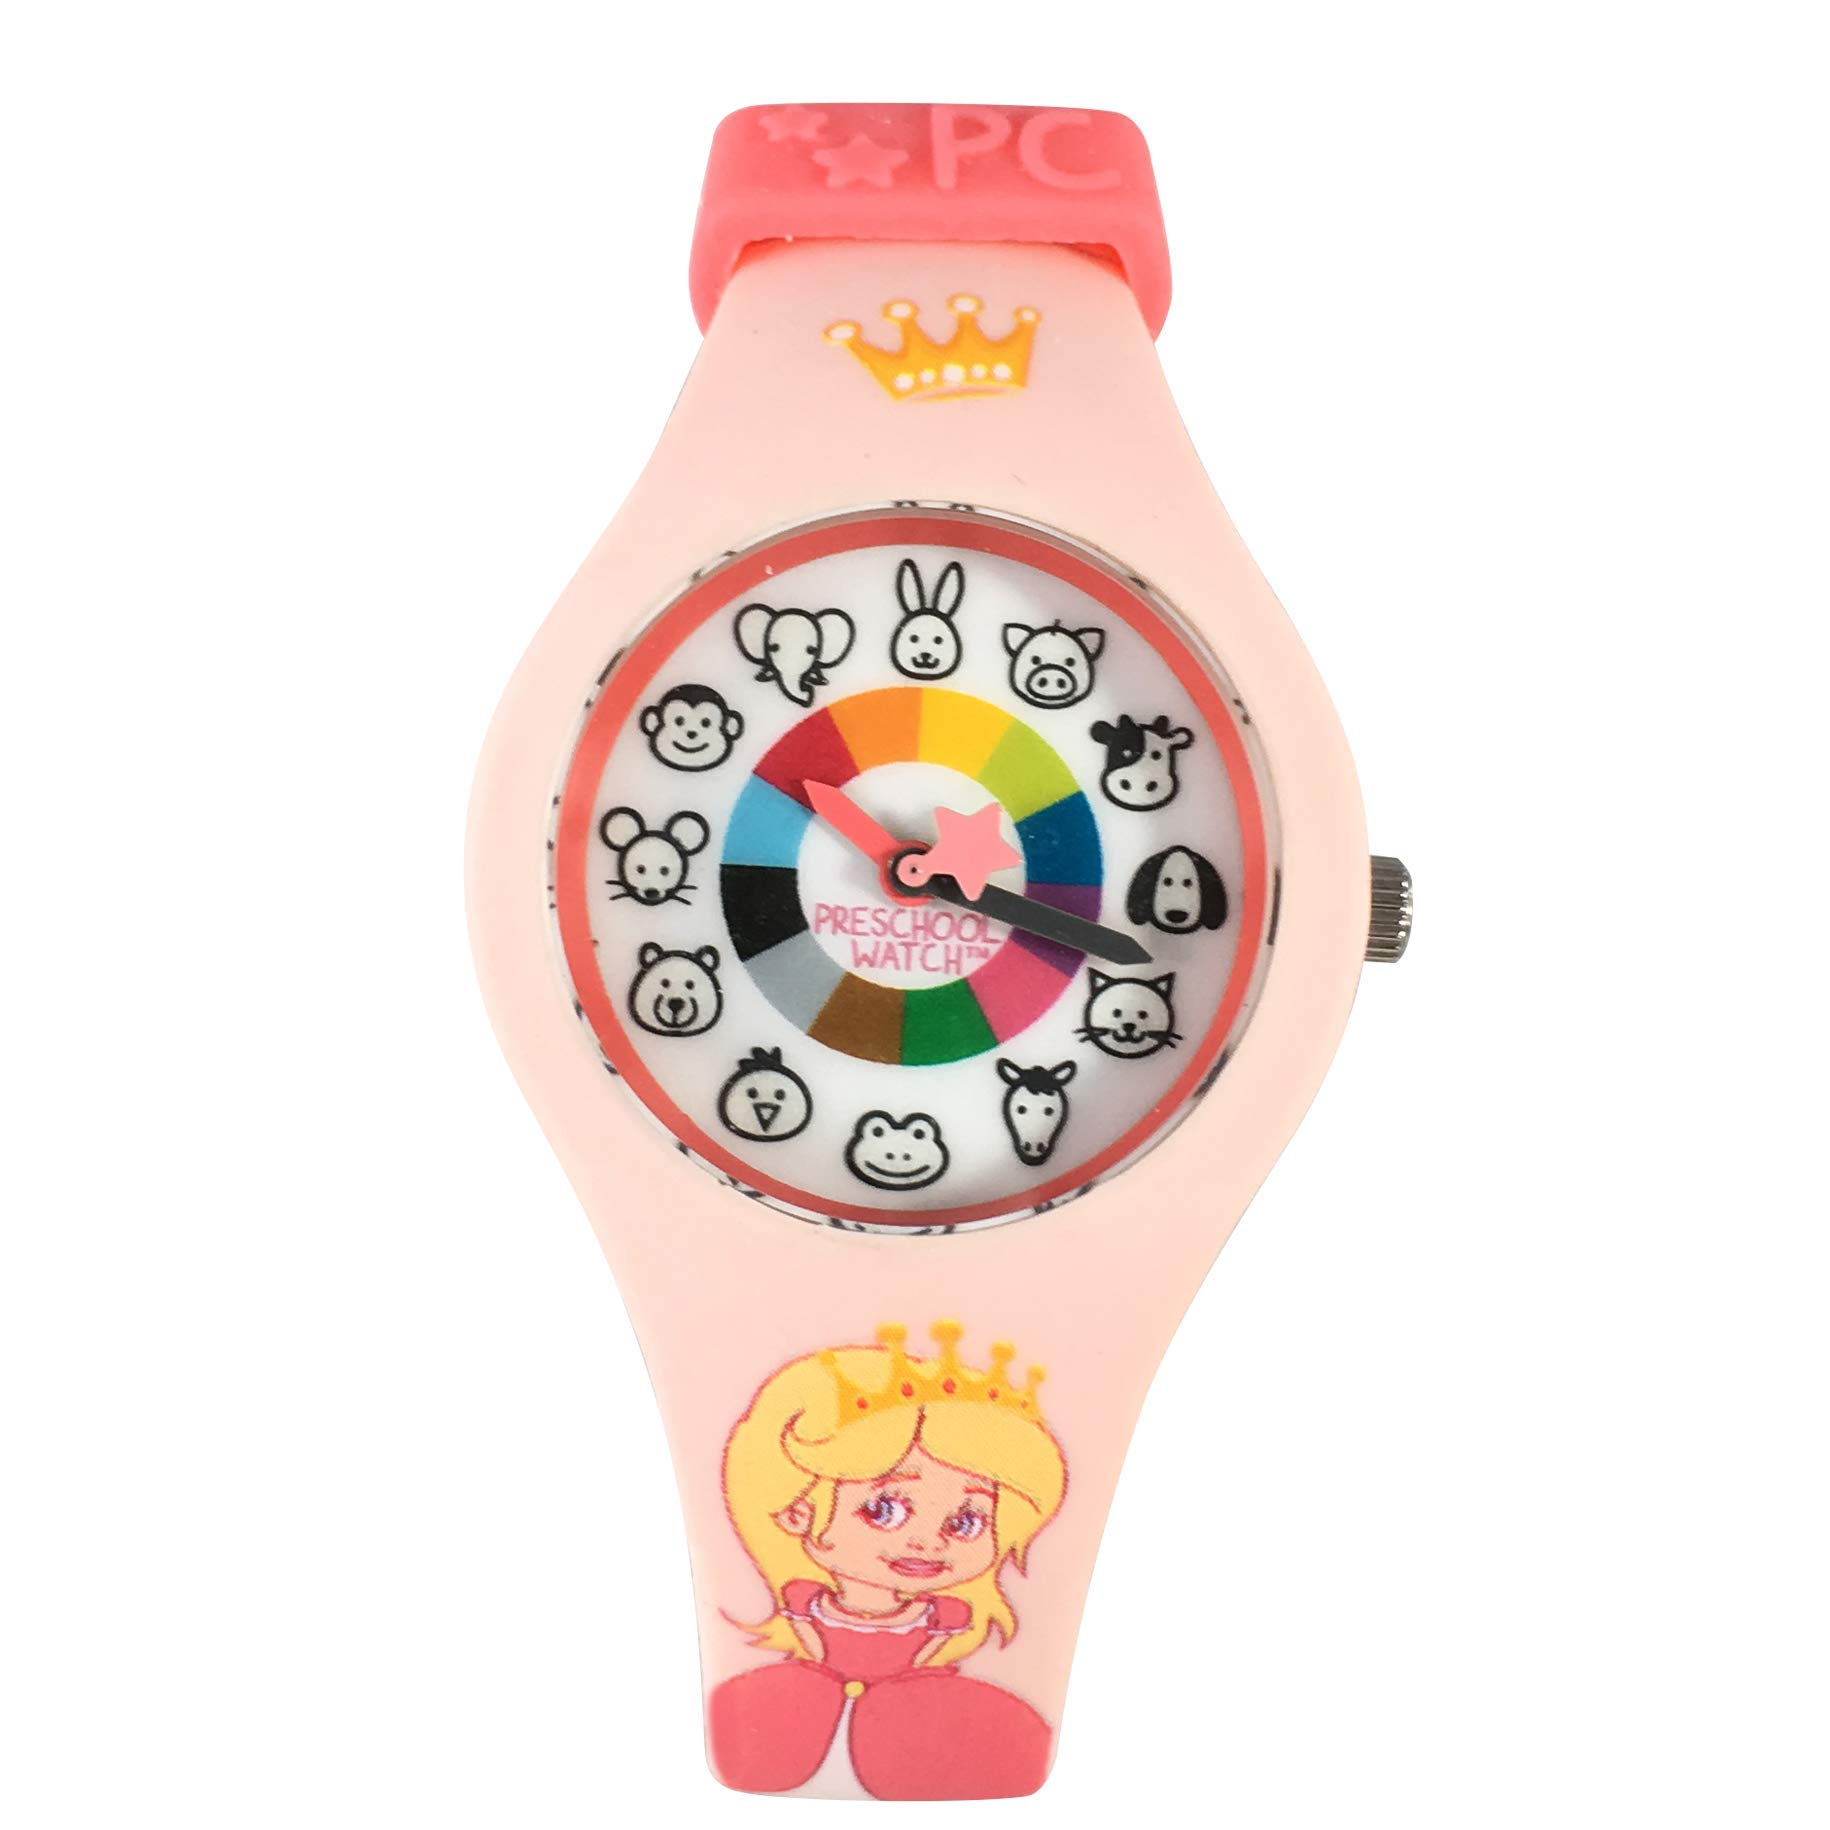 Princess Preschool Watch - The Only Analog Kids Watch Preschoolers Understand! Quality Teaching time Silicone Watch with Glow-in-The-Dark Dial & Japan Movement by PRESCHOOL COLLECTION